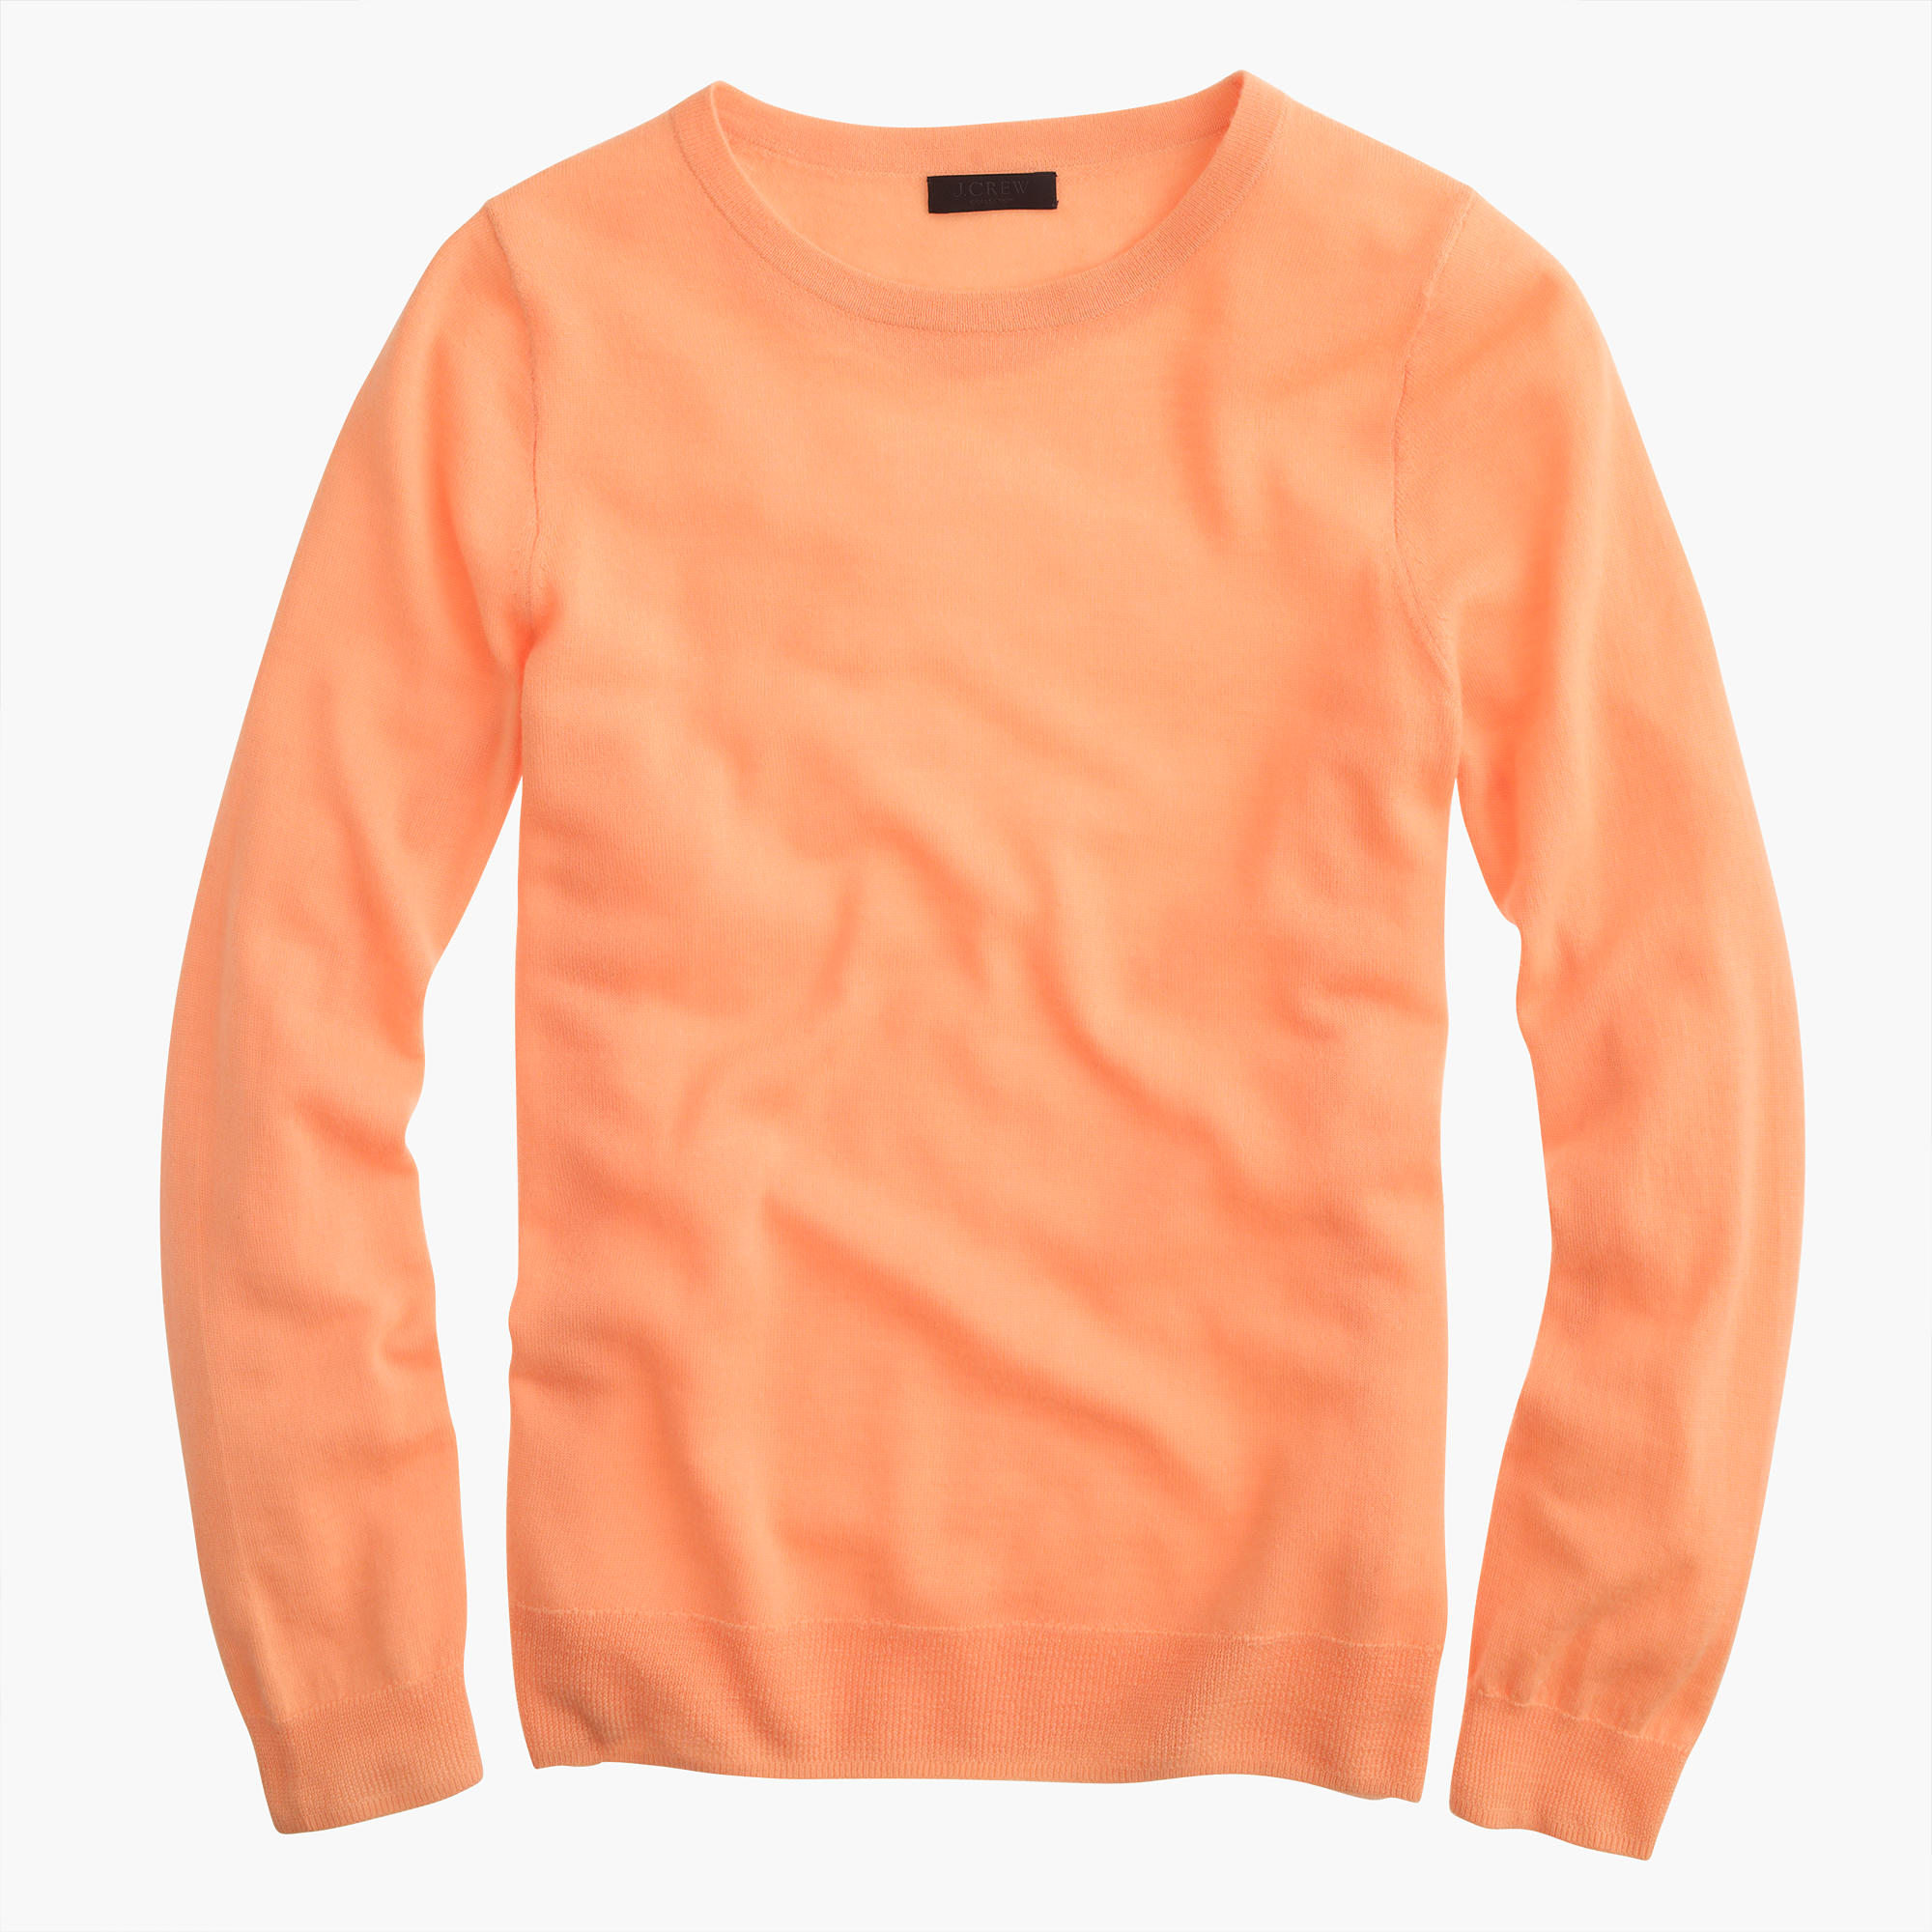 JCrew sweater in orange